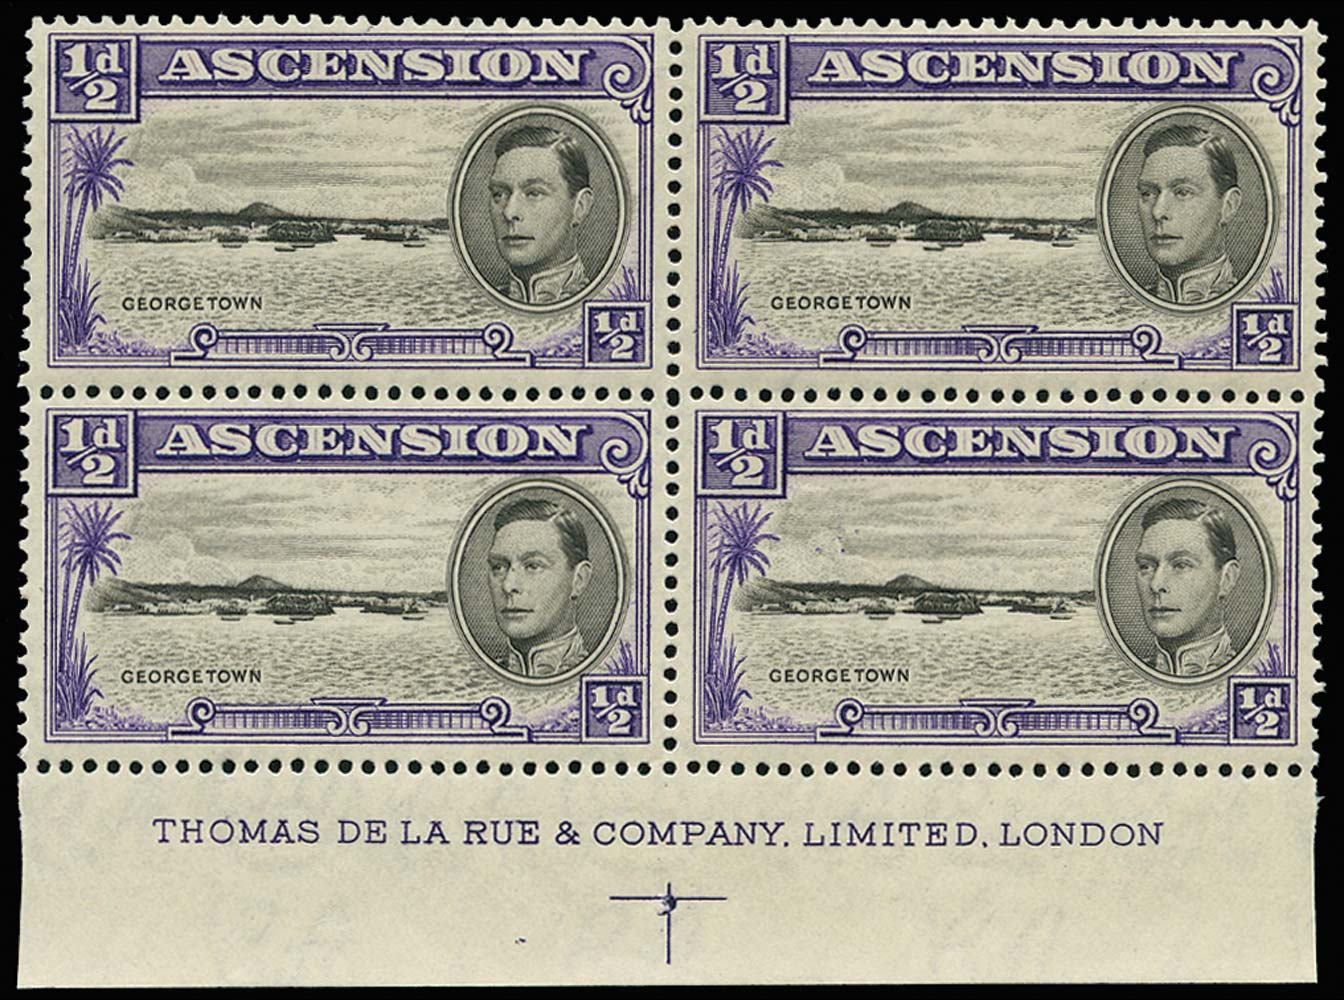 ASCENSION 1938  SG38 Mint